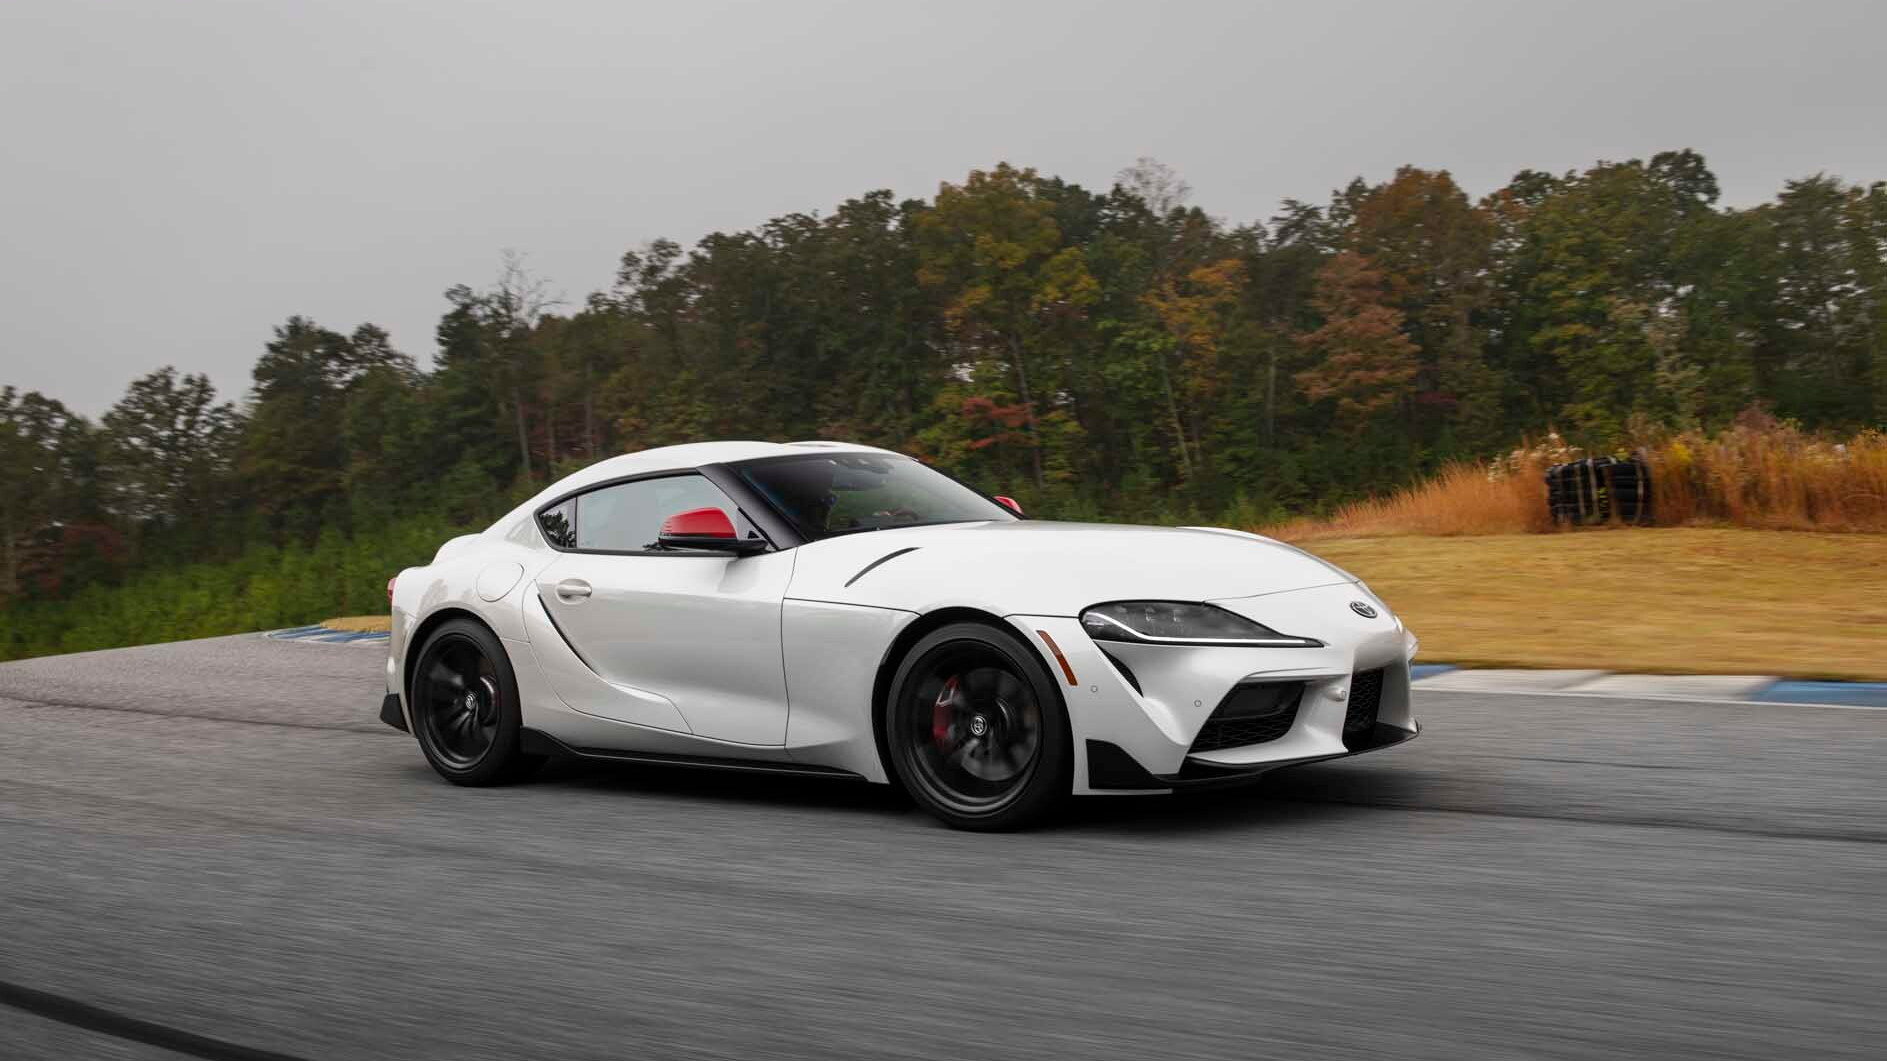 2020 Toyota Supra - Best Car To Buy 2020